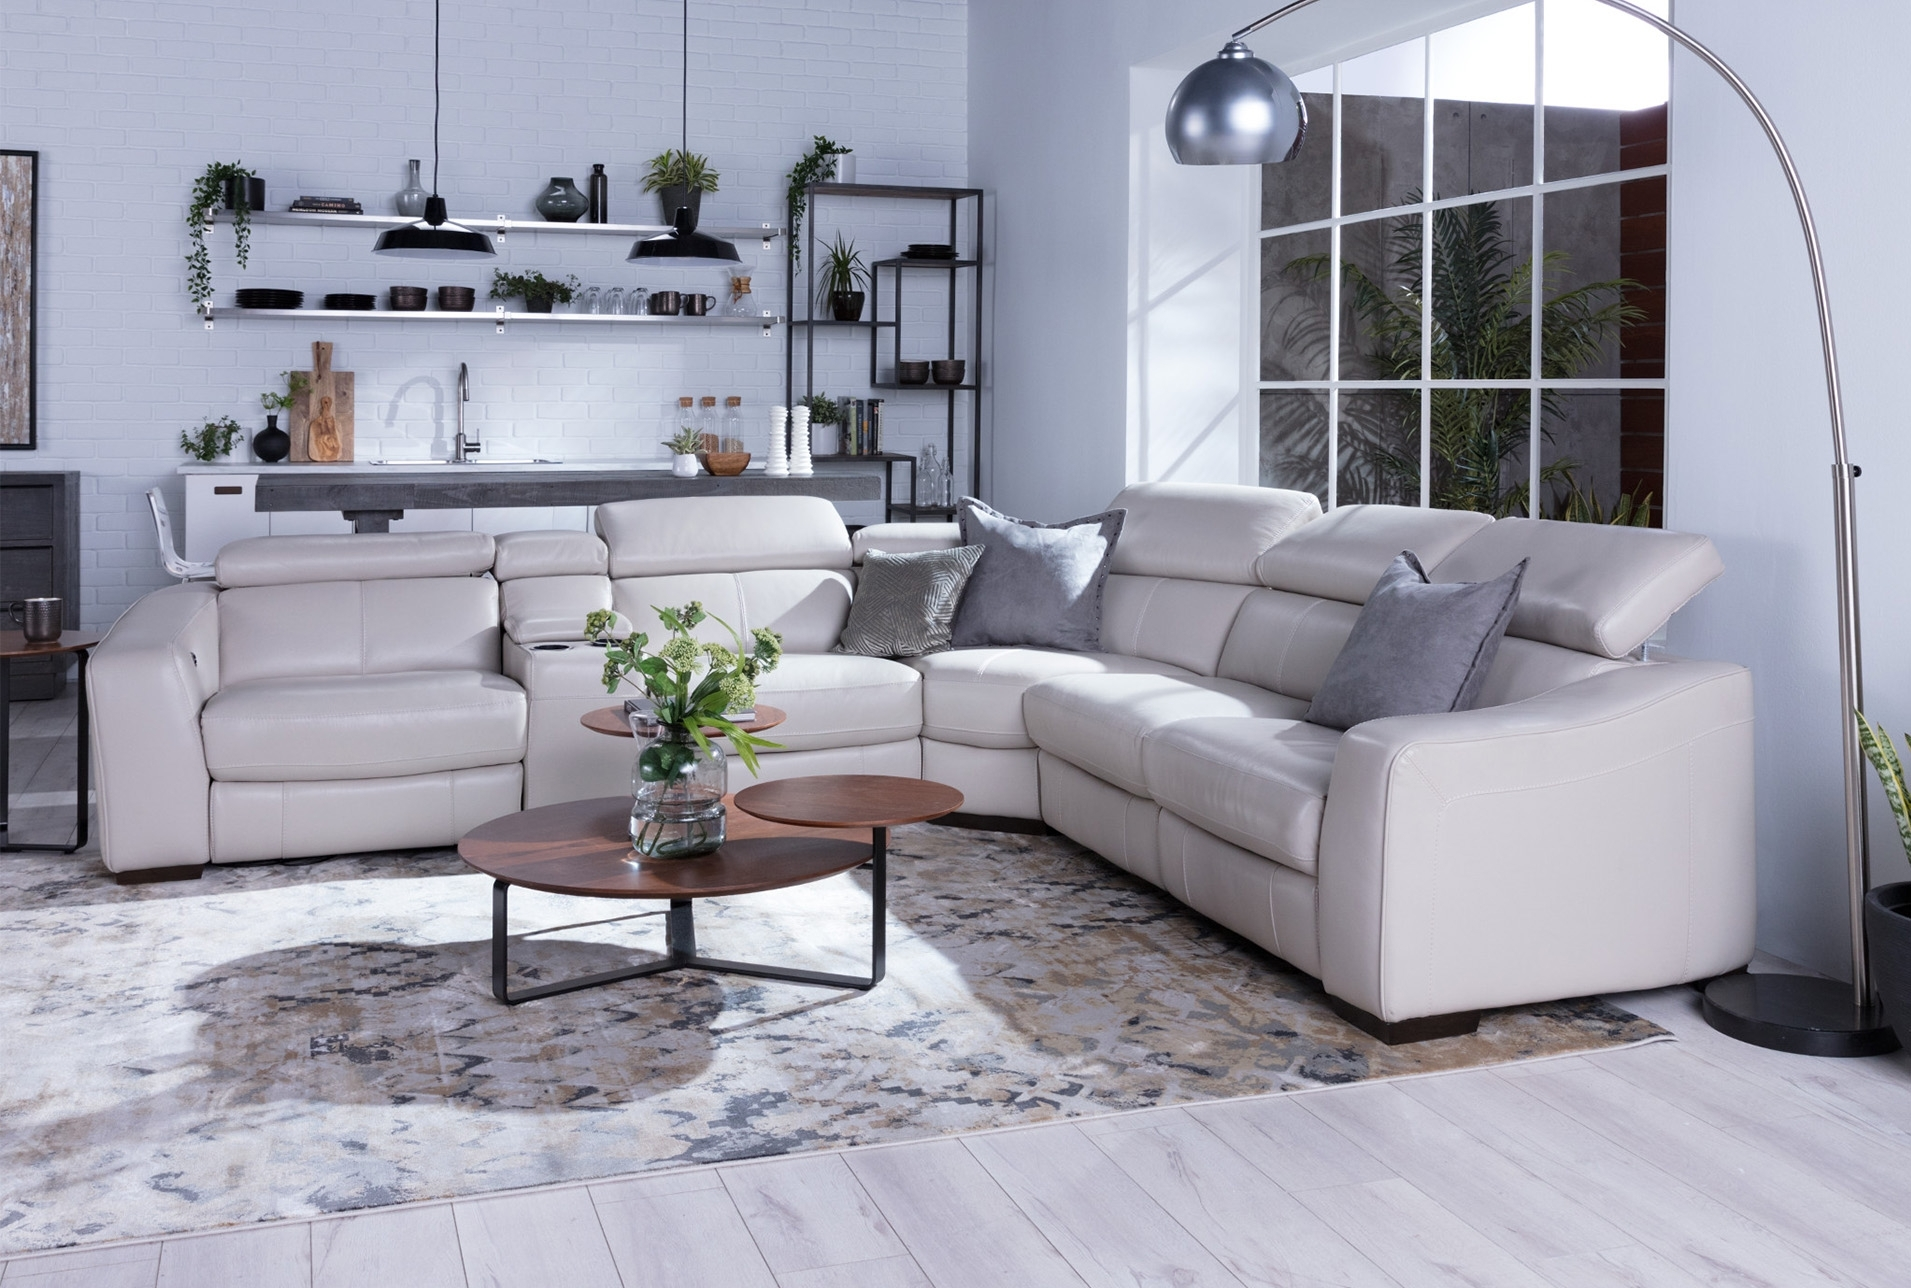 Kristen Silver Grey 6 Piece Power Reclining Sectional | Products Throughout Kristen Silver Grey 6 Piece Power Reclining Sectionals (Photo 3 of 30)